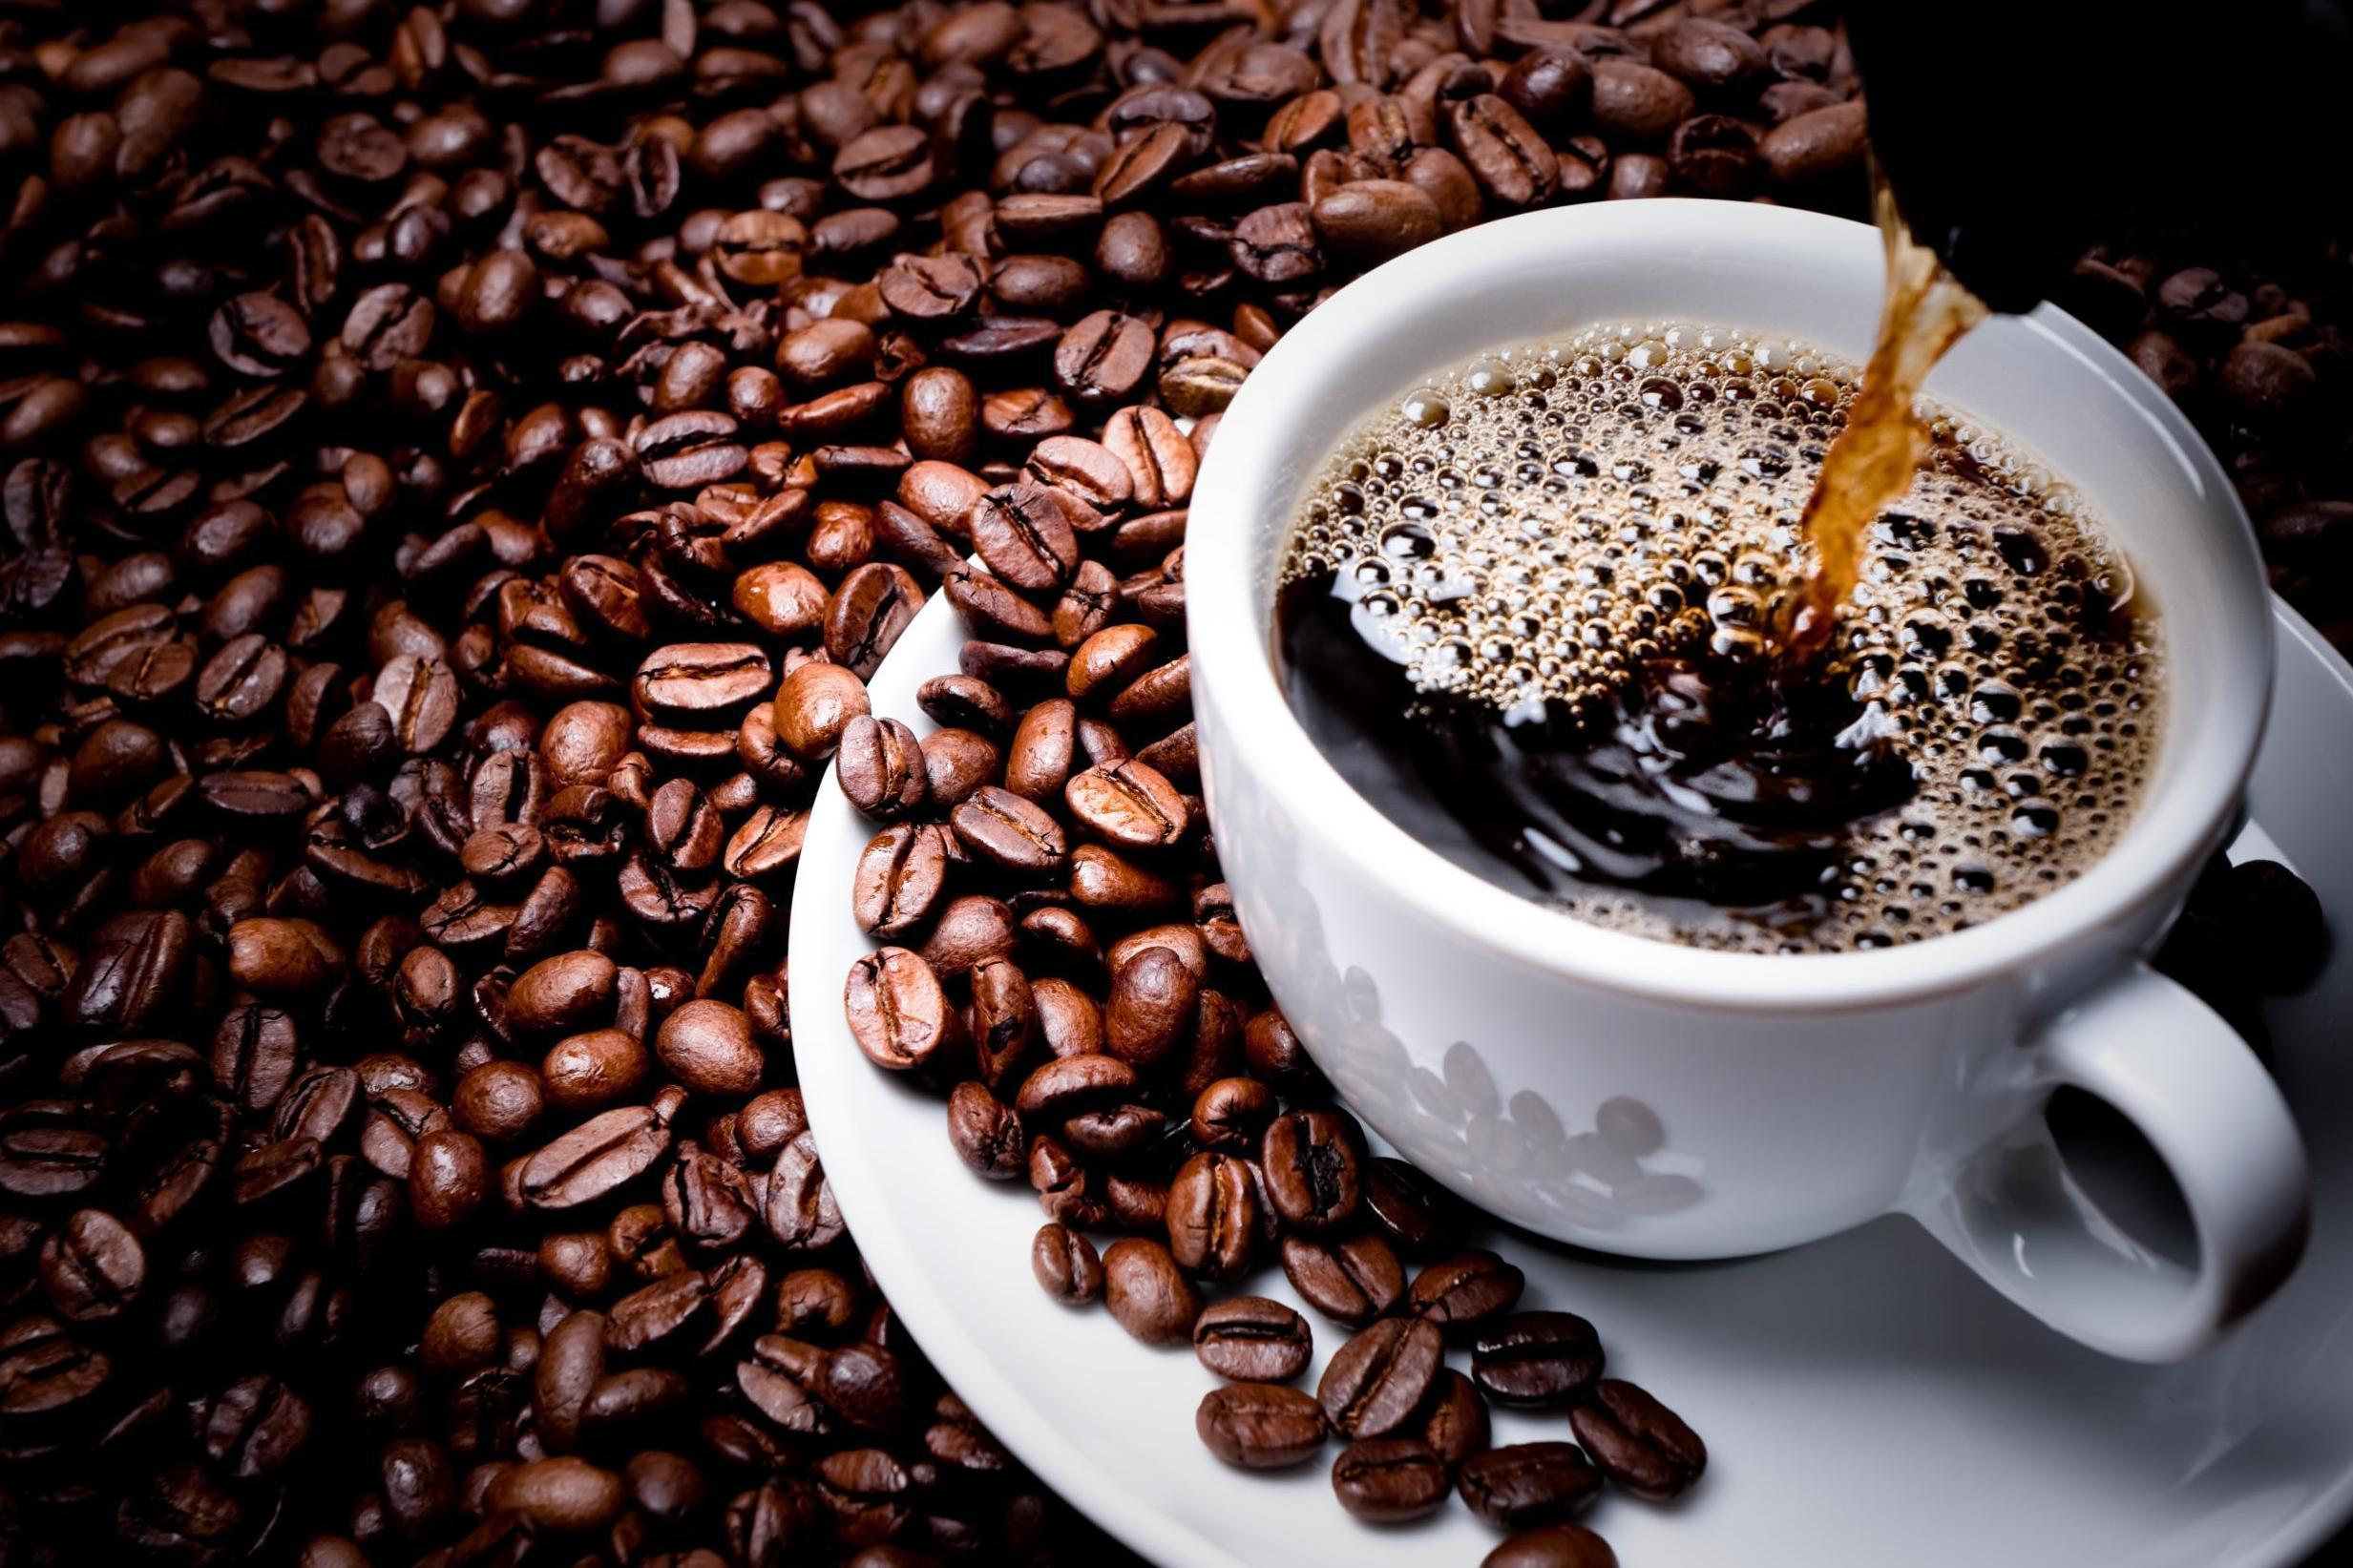 Drink coffee after breakfast for better control of metabolism